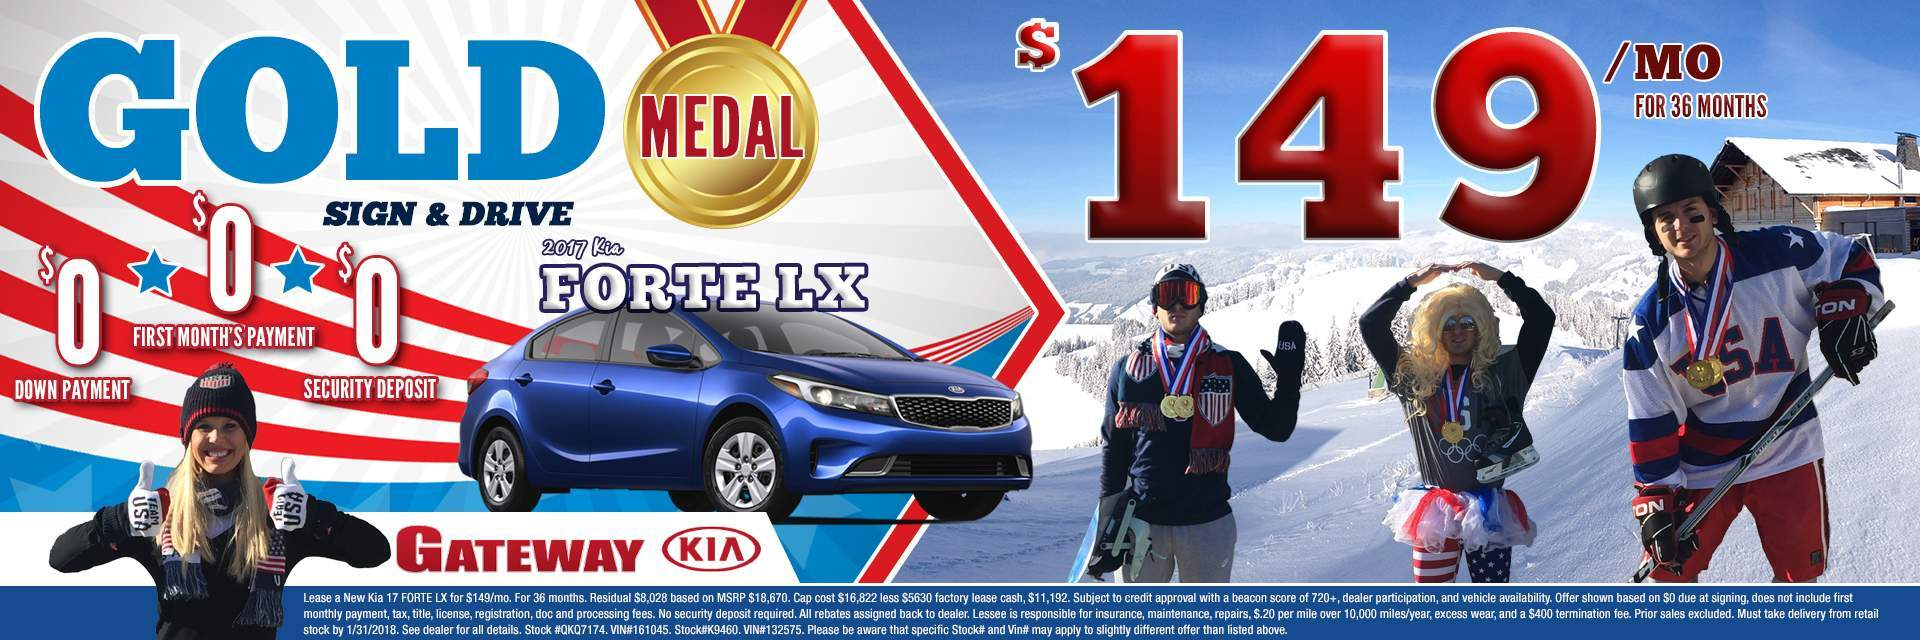 $149 Forte Gold Medal Sign and Drive